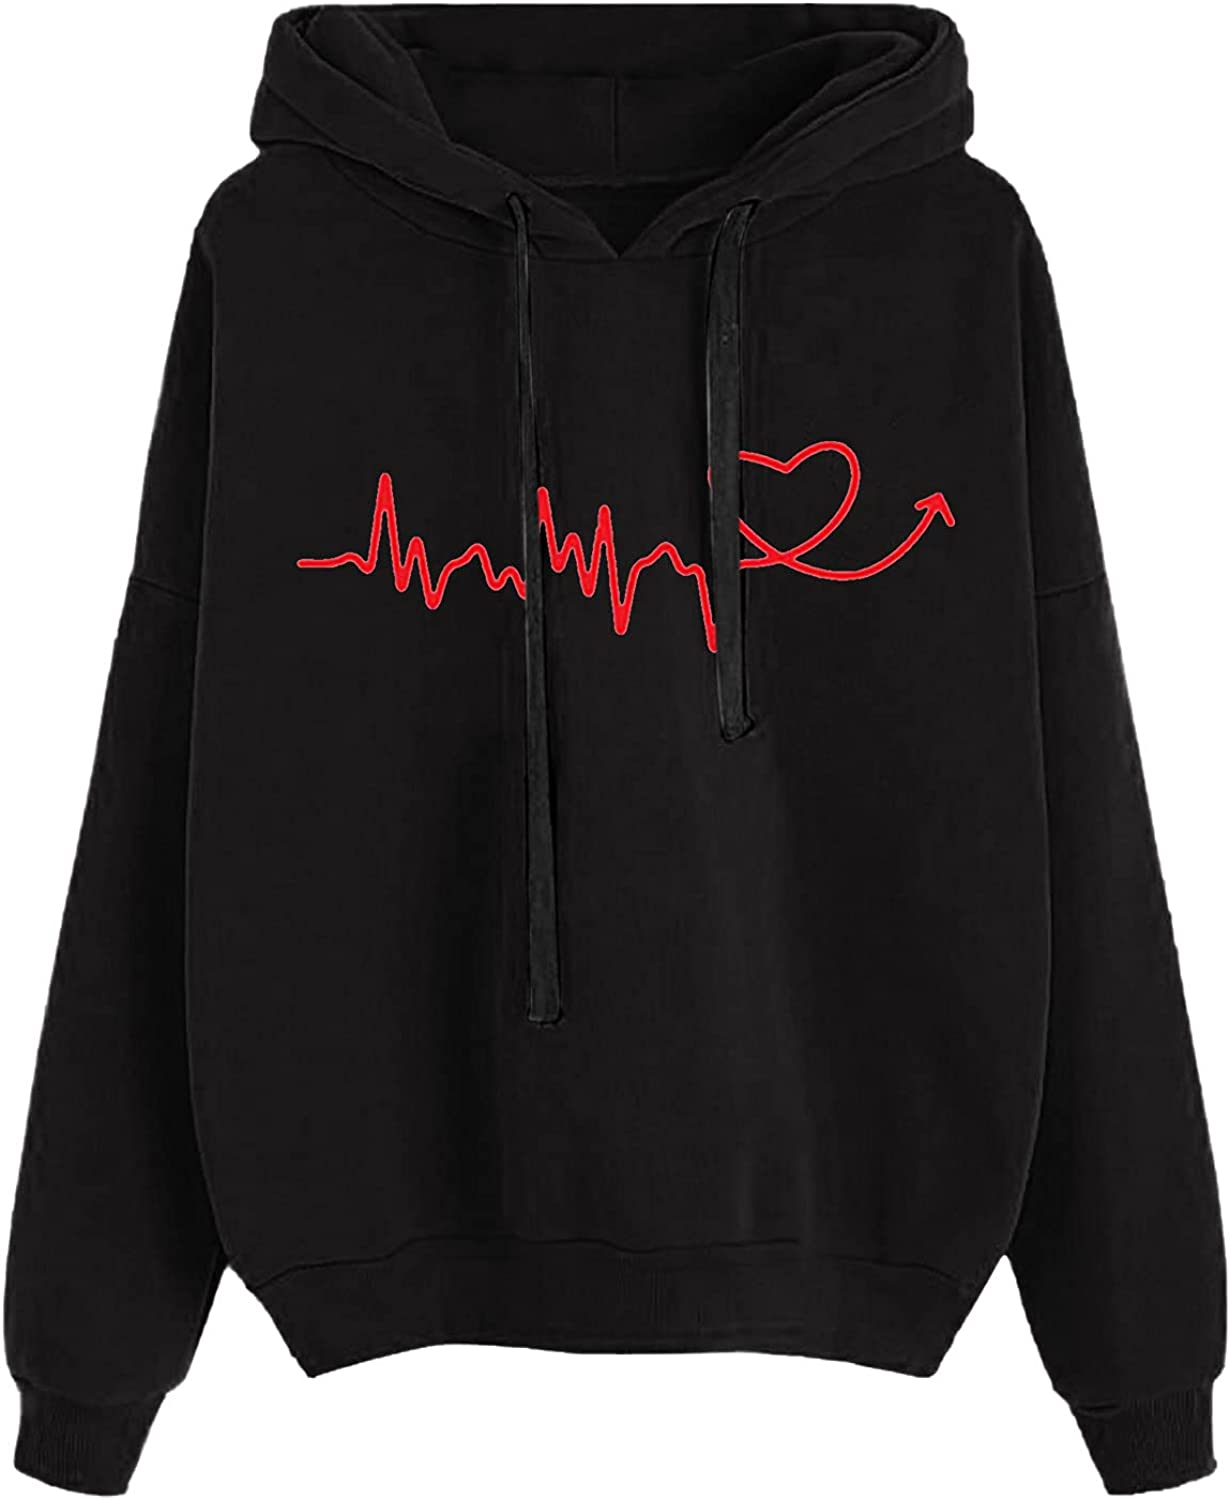 HIRIRI Pullover Hoodies Limited time for free shipping for Women Lightweight Cheap mail order sales Printing Heartbeat